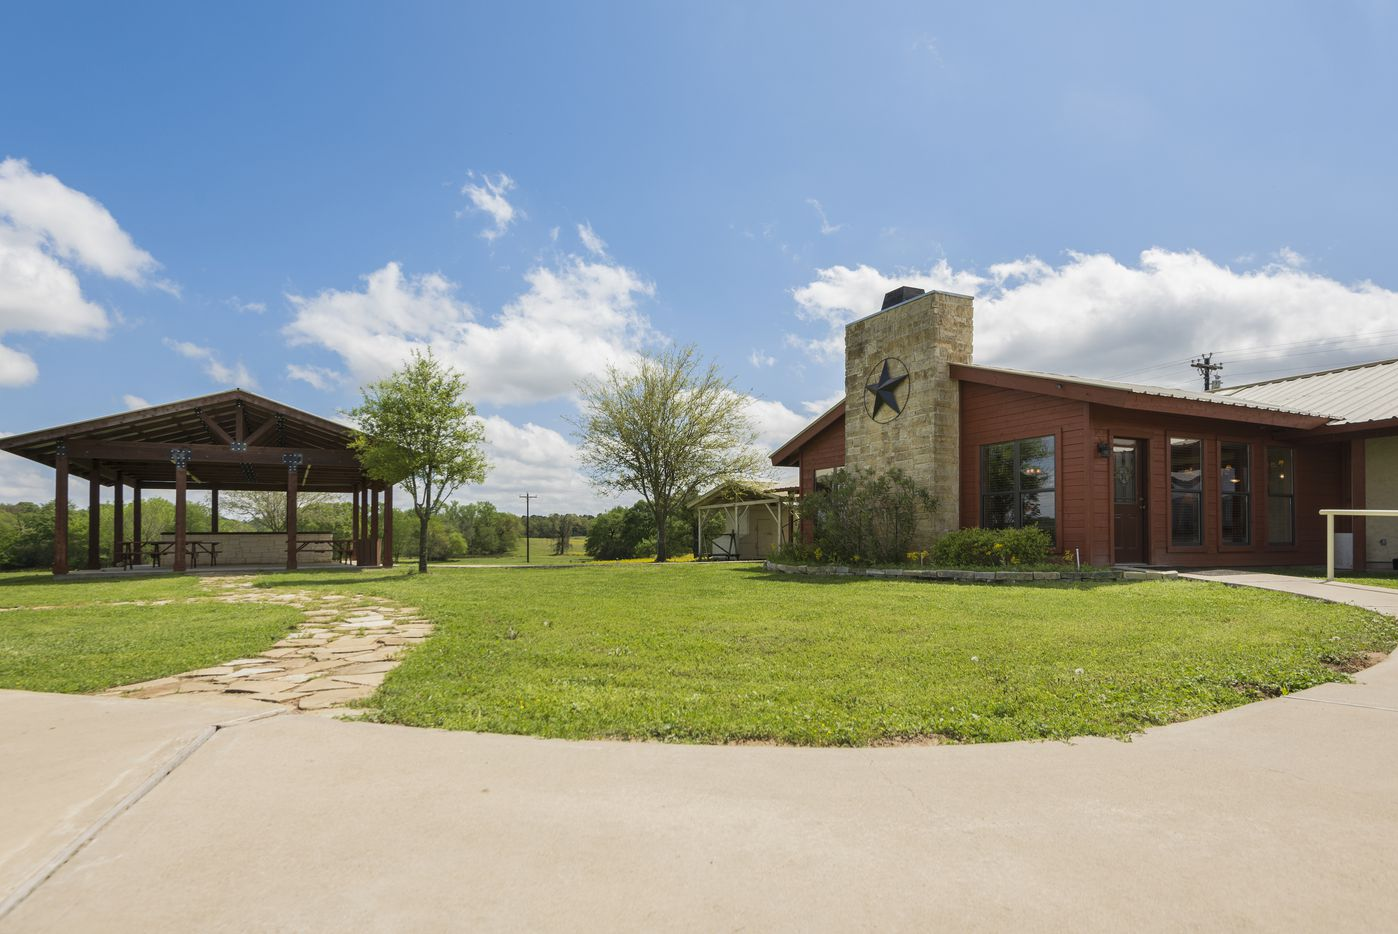 The bunkhouse at the Champion Ranch sleeps 16.